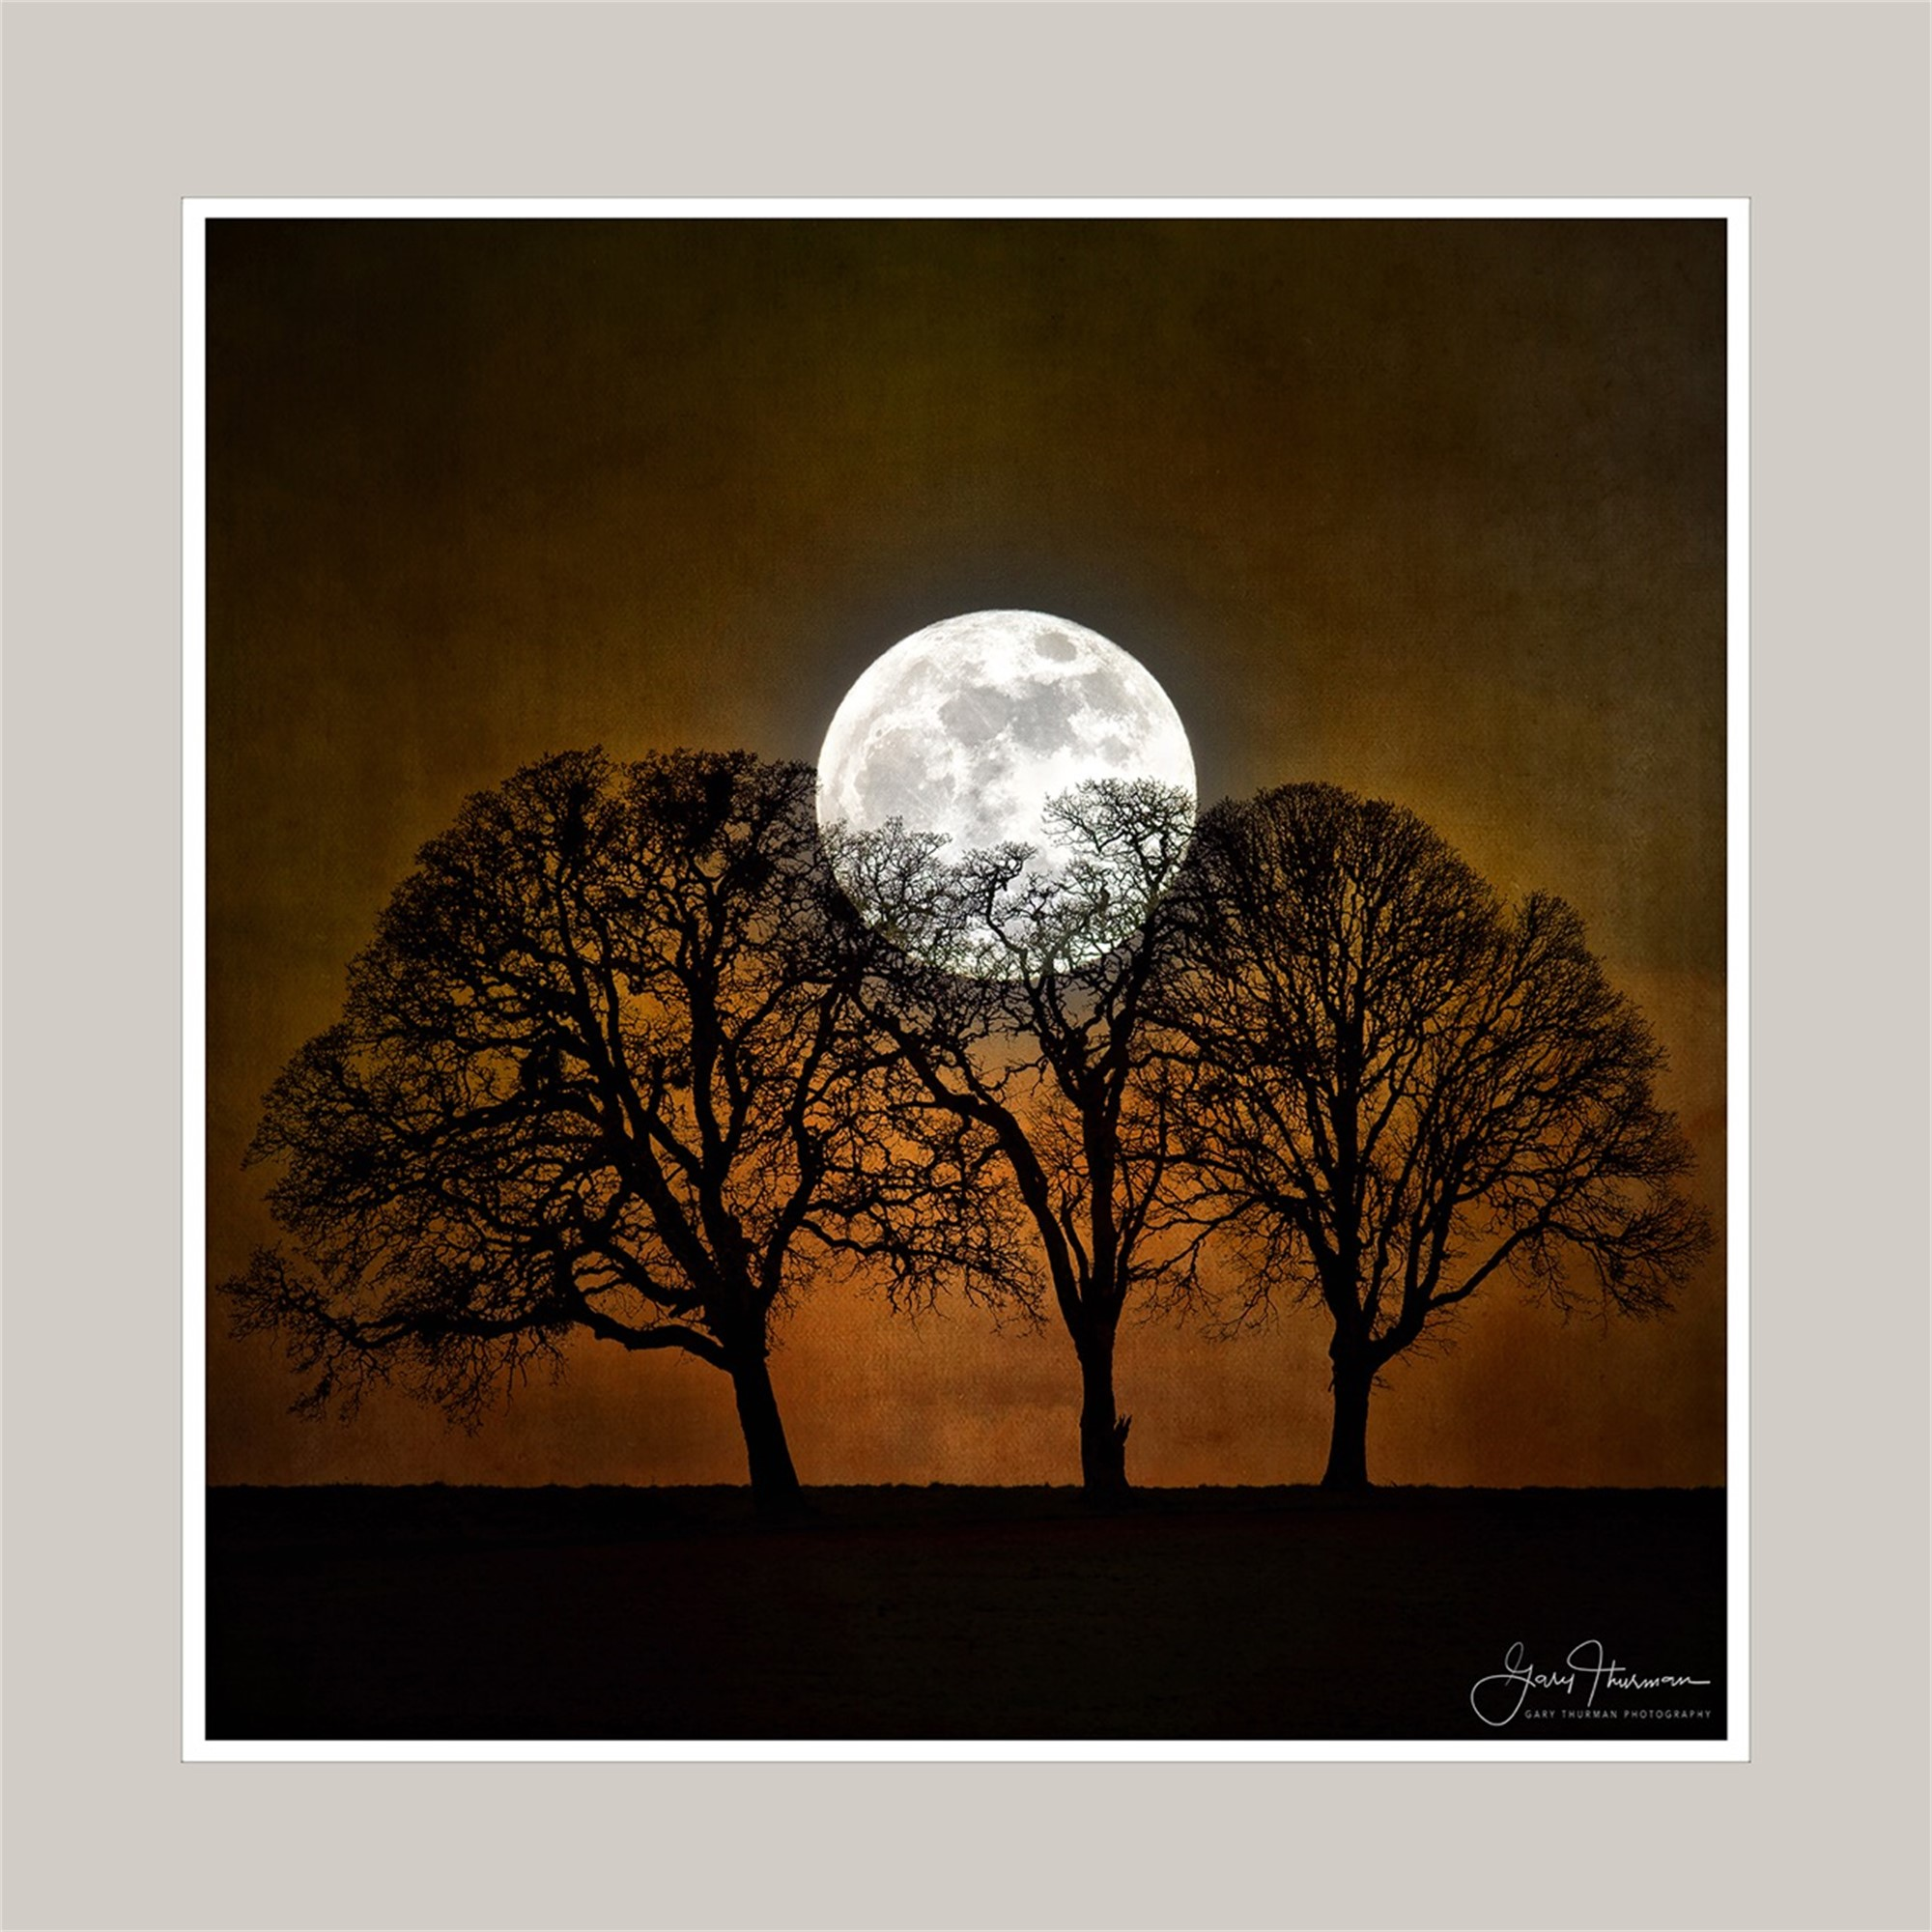 Bad Moon Rising (small) by Gary Thurman (McMinnville, OR)